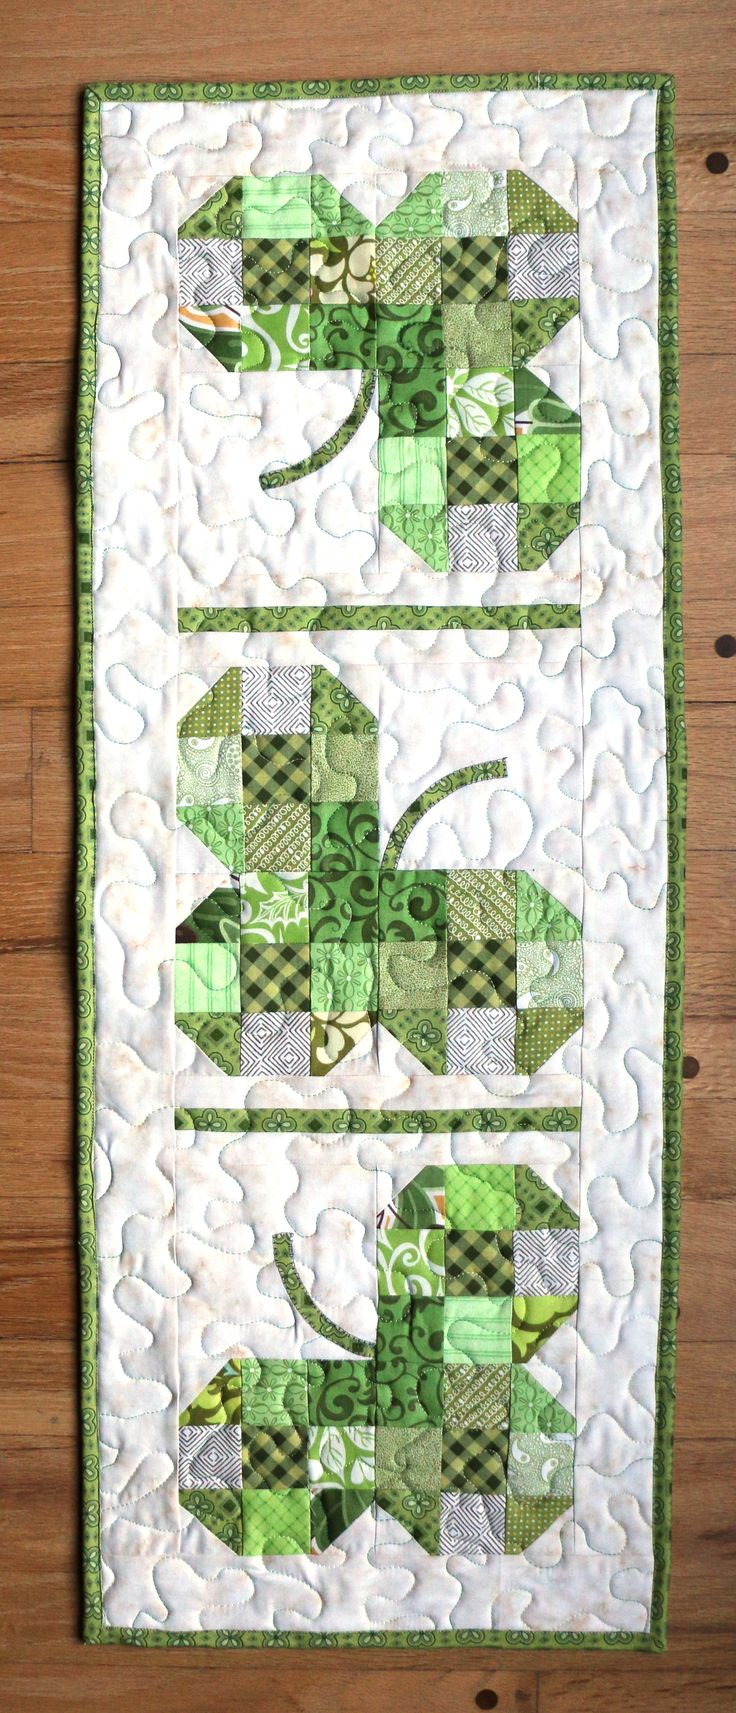 A St. Patrick's Day table runner made using the Quiltcut 2!  The ability to layer all my scraps before cutting made it SO easy!!!